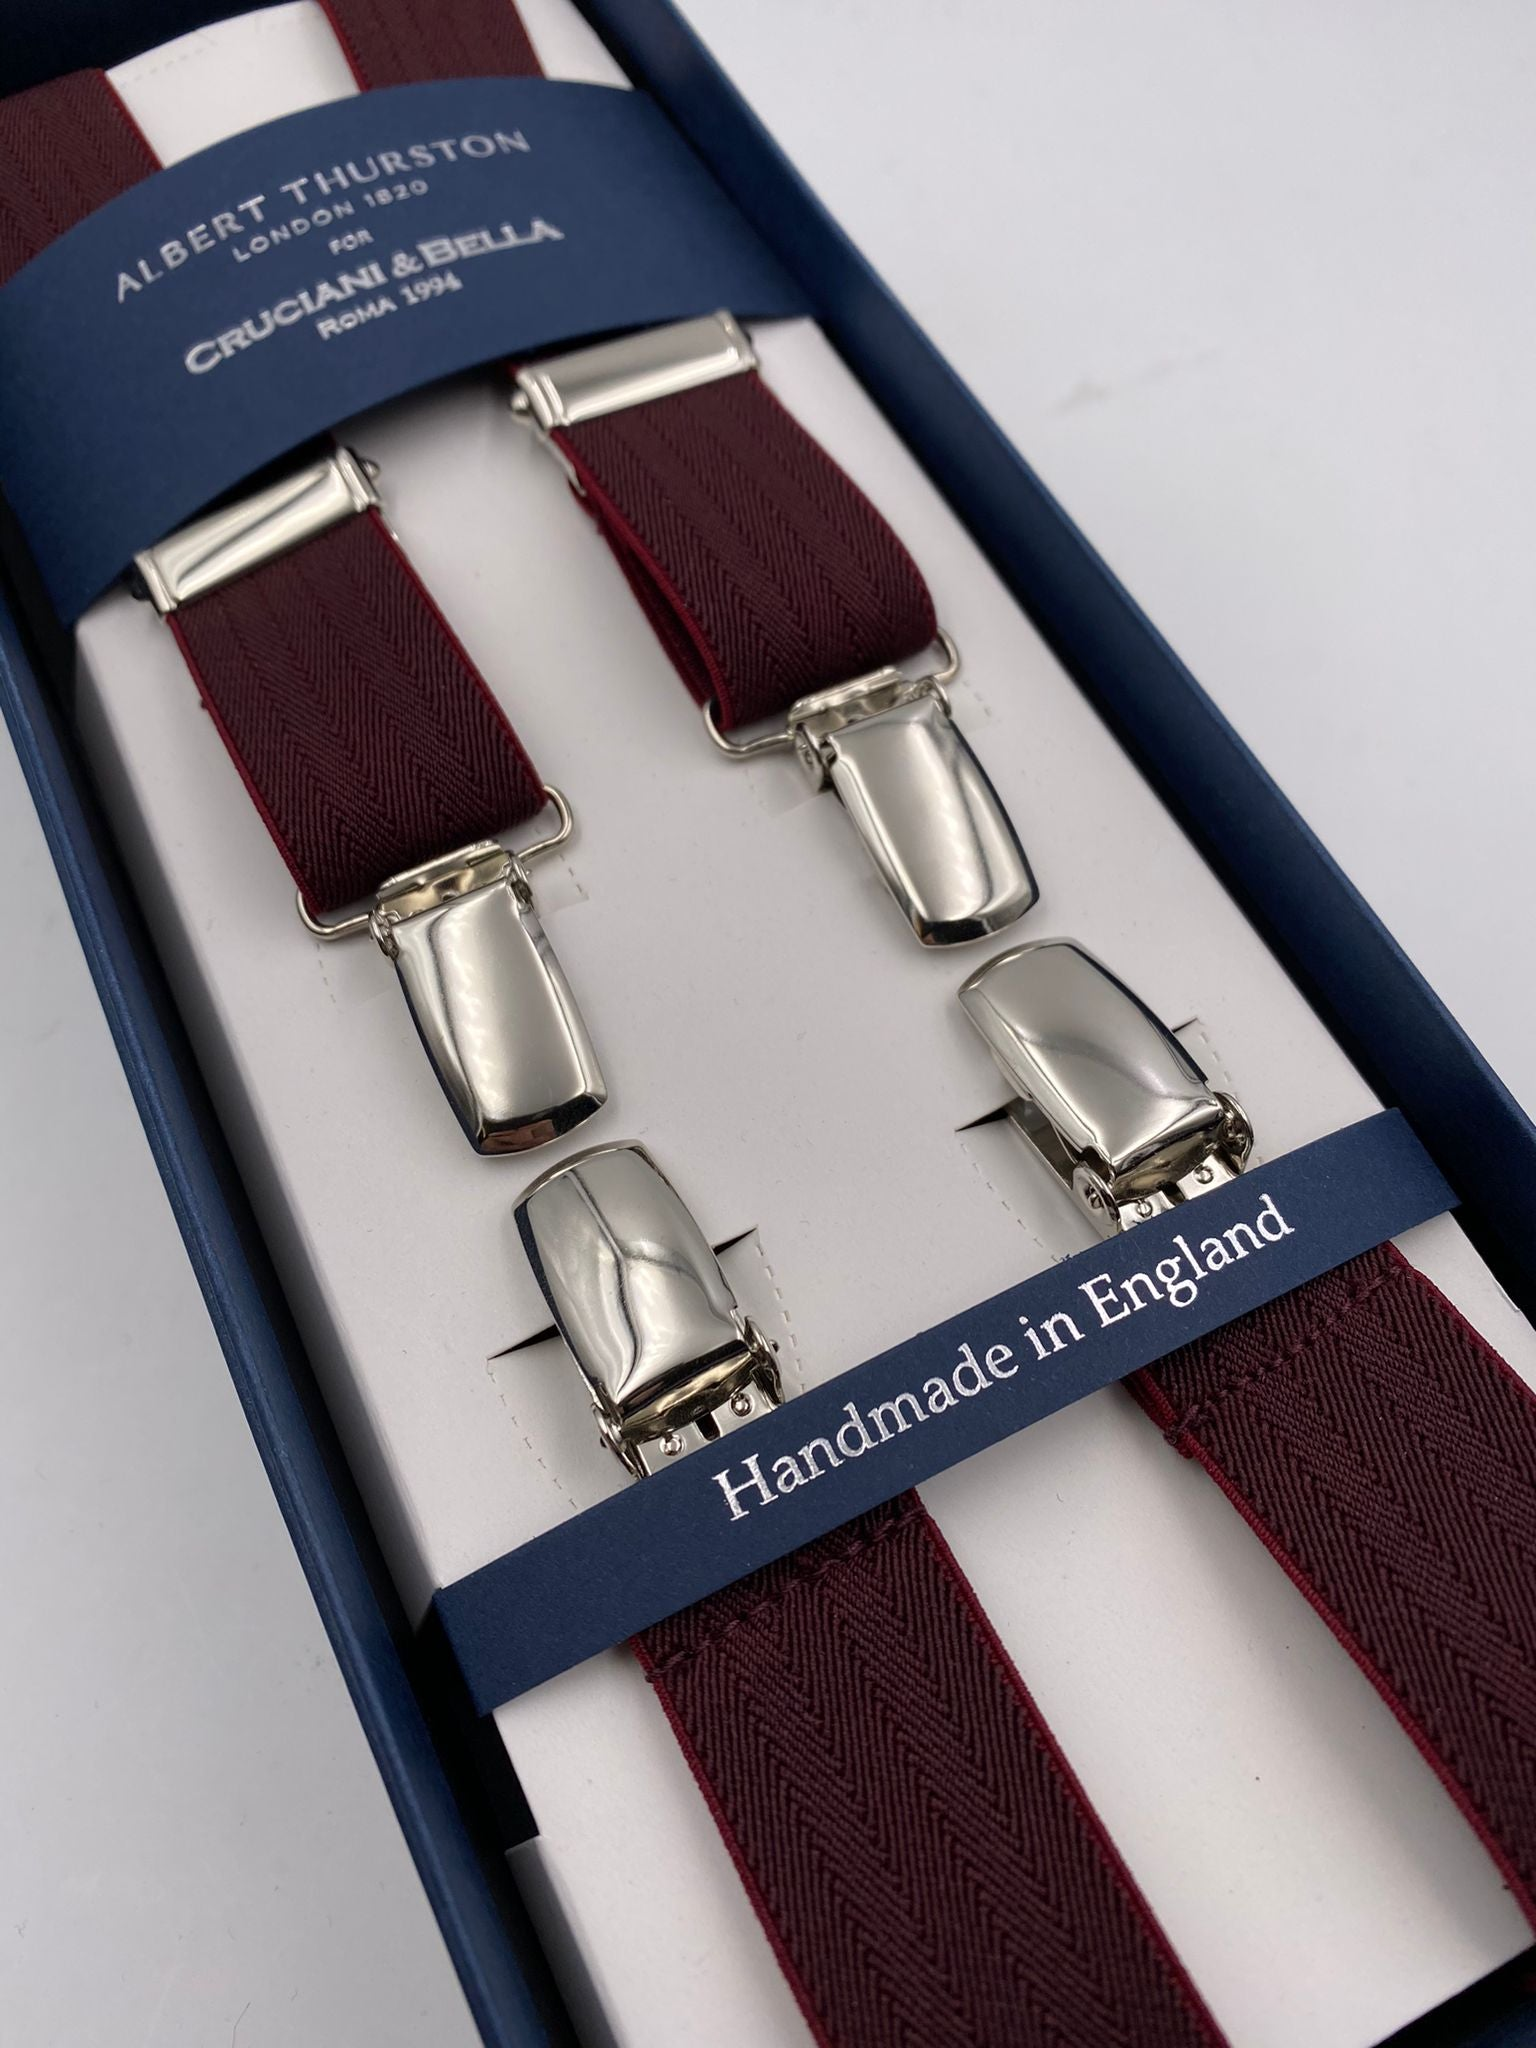 Albert Thurston for Cruciani & Bella Made in England Clip on Adjustable Sizing 25 mm elastic braces Bourgundy Harringbone Plain Color X-Shaped Nickel Fittings Size: L #4840